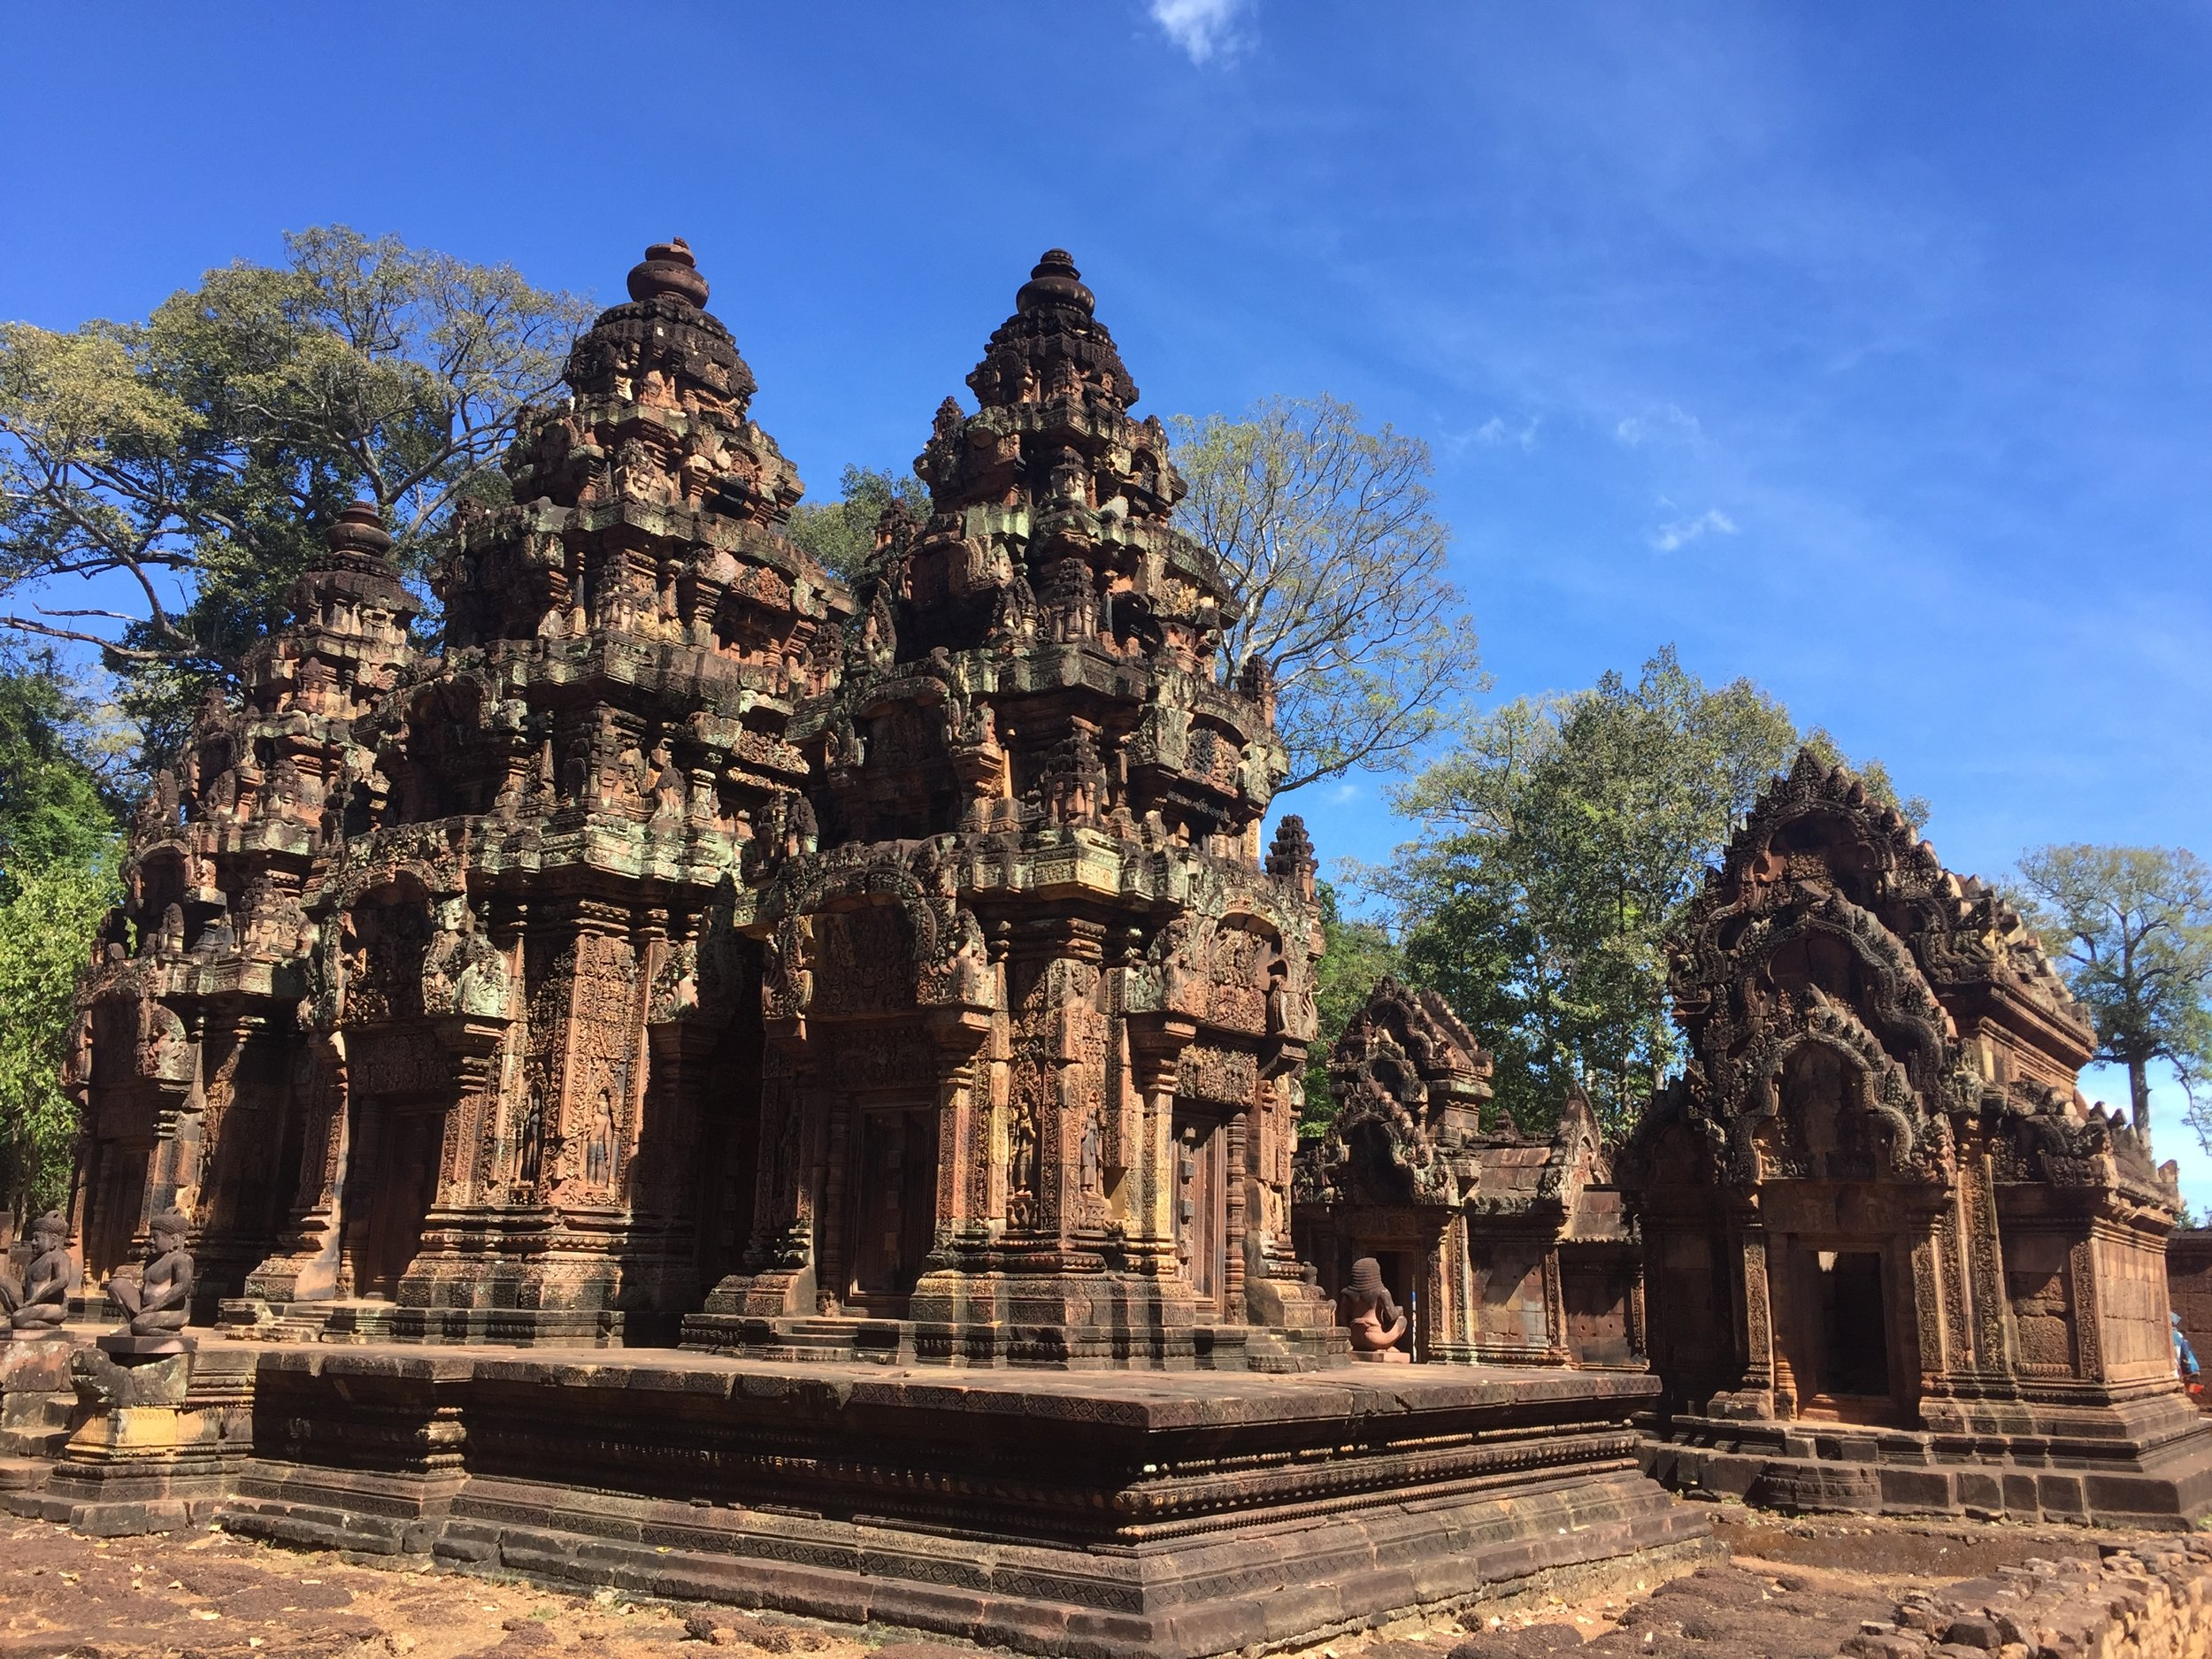 This is also Banteay Srei.